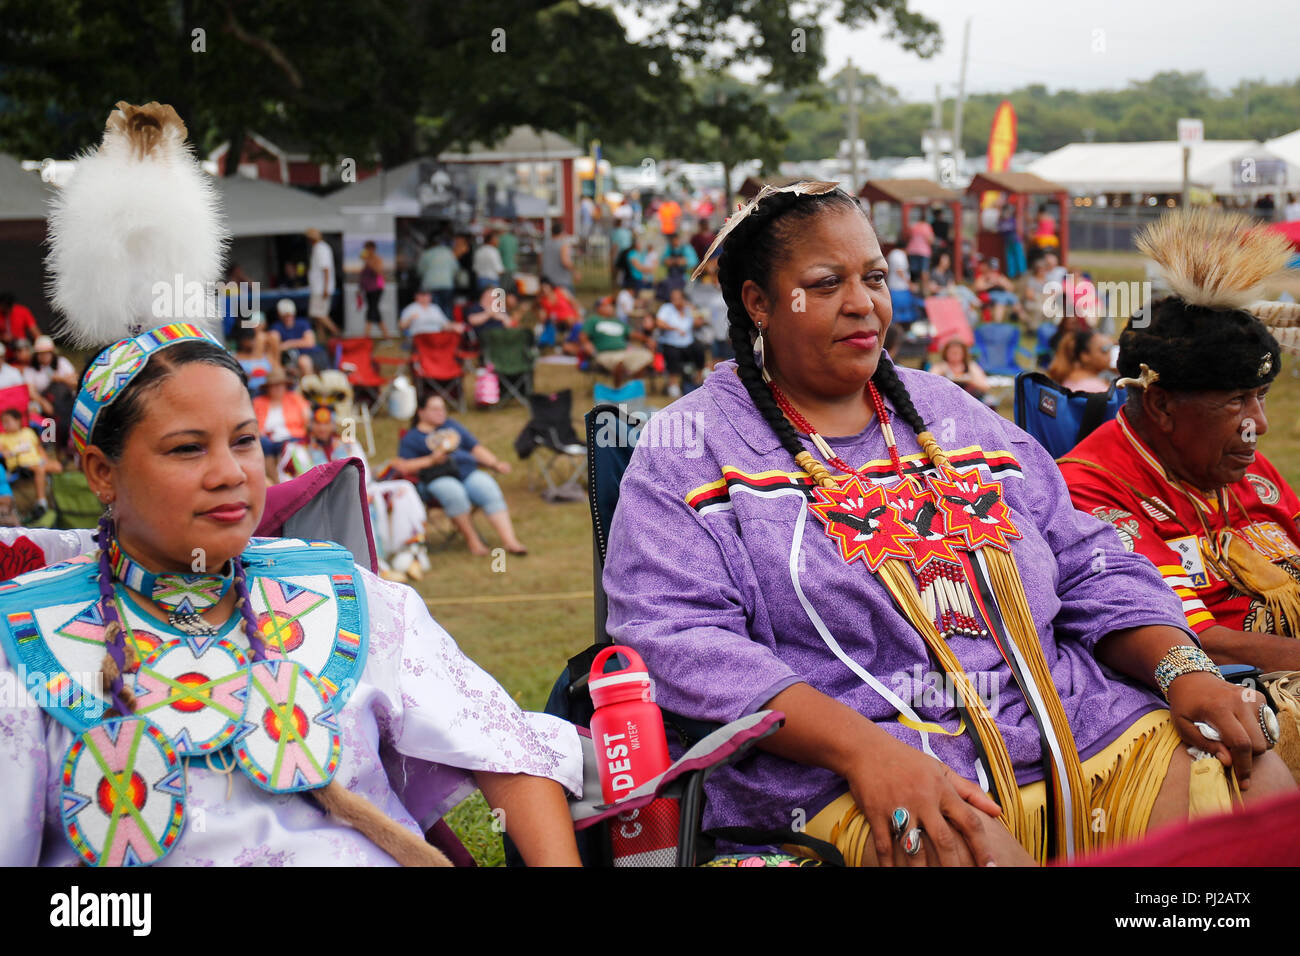 Southhampton, United States of America. 03rd, Sep 2018. A Native American prepares to dance during the celebration of the 72nd annual Shinnecock Indian Powwow over the Labour Day weekend in Southampton Long Island New York in Southhampton, United States of America, 03 September 2018. (PHOTO) Alejandro Sala/Alamy News Stock Photo